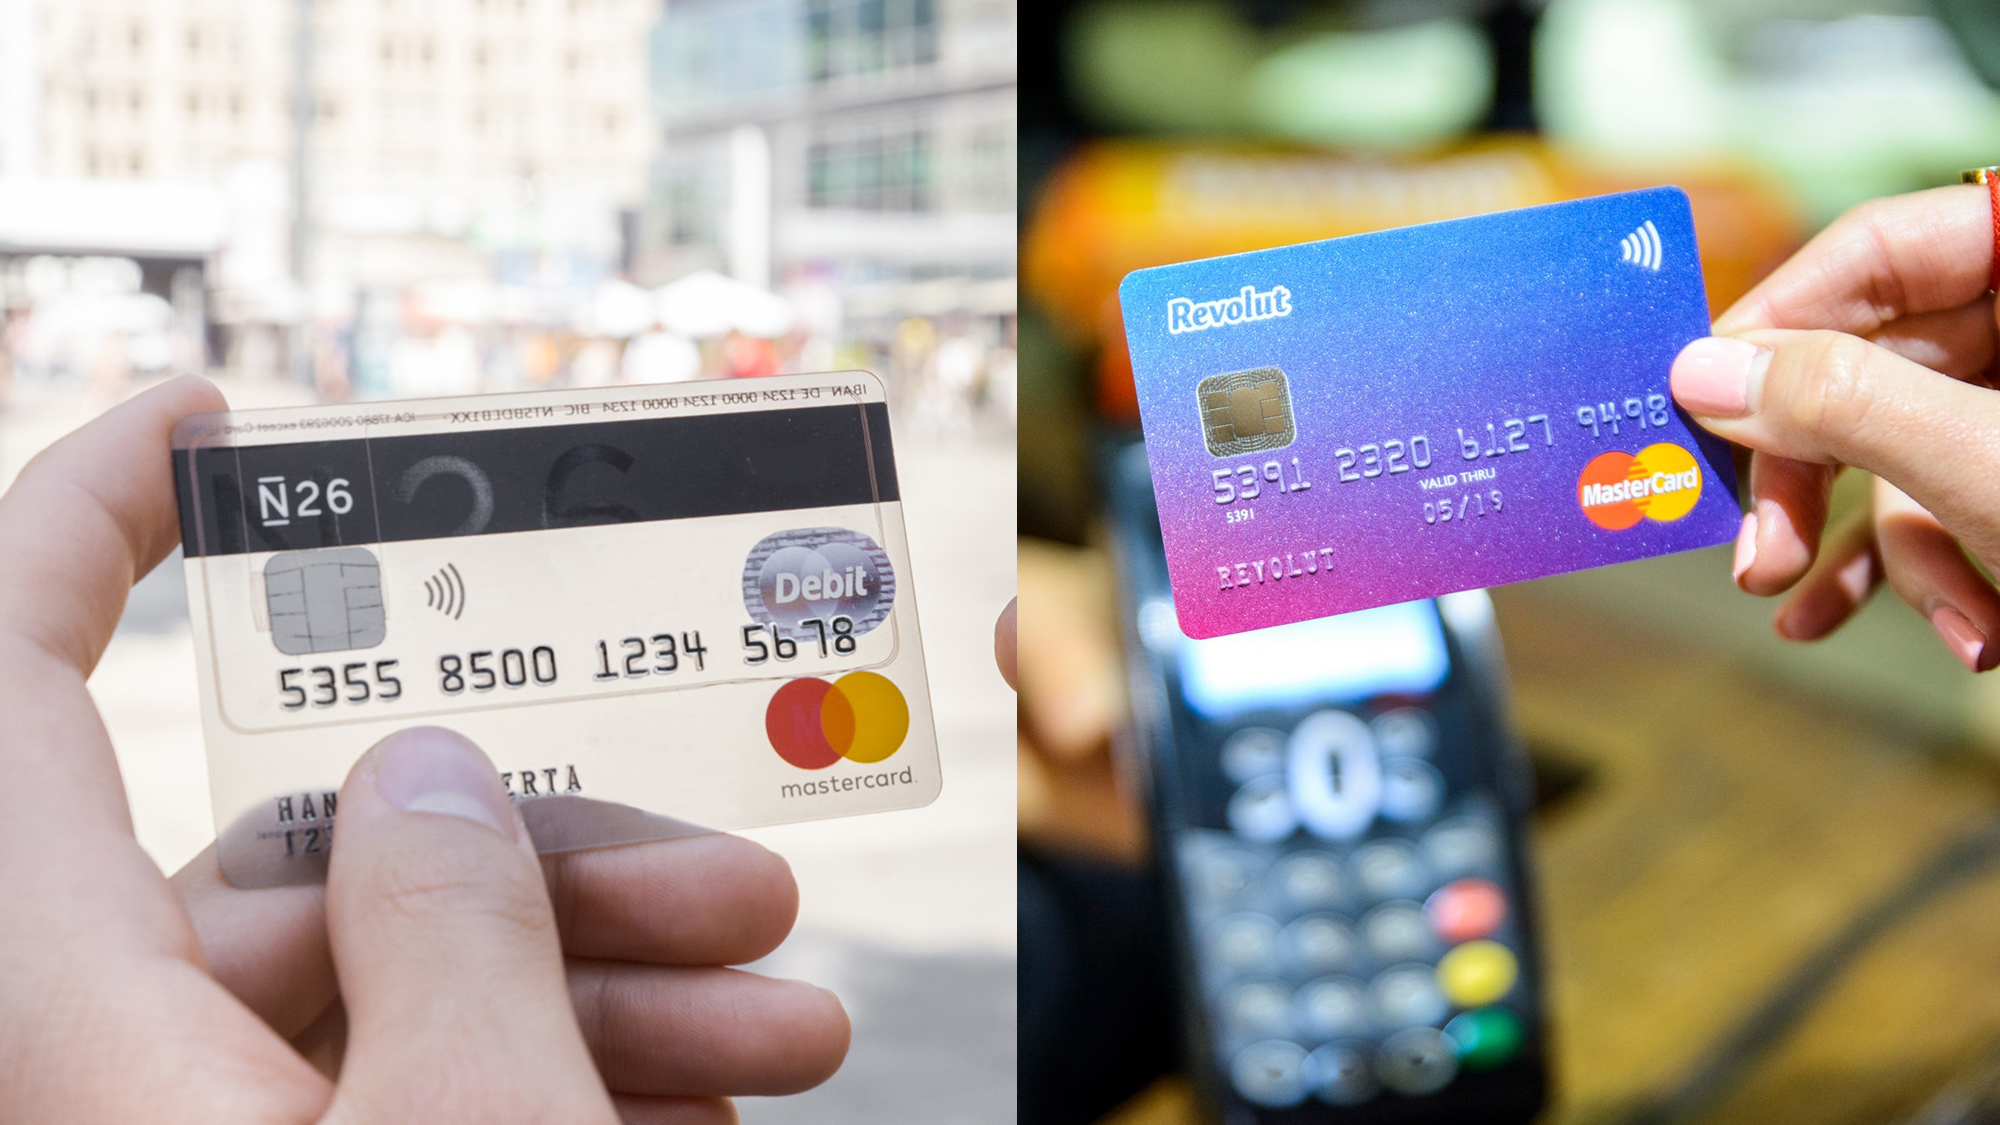 N26 and Revolut rides for Europe  Both see themselves in the